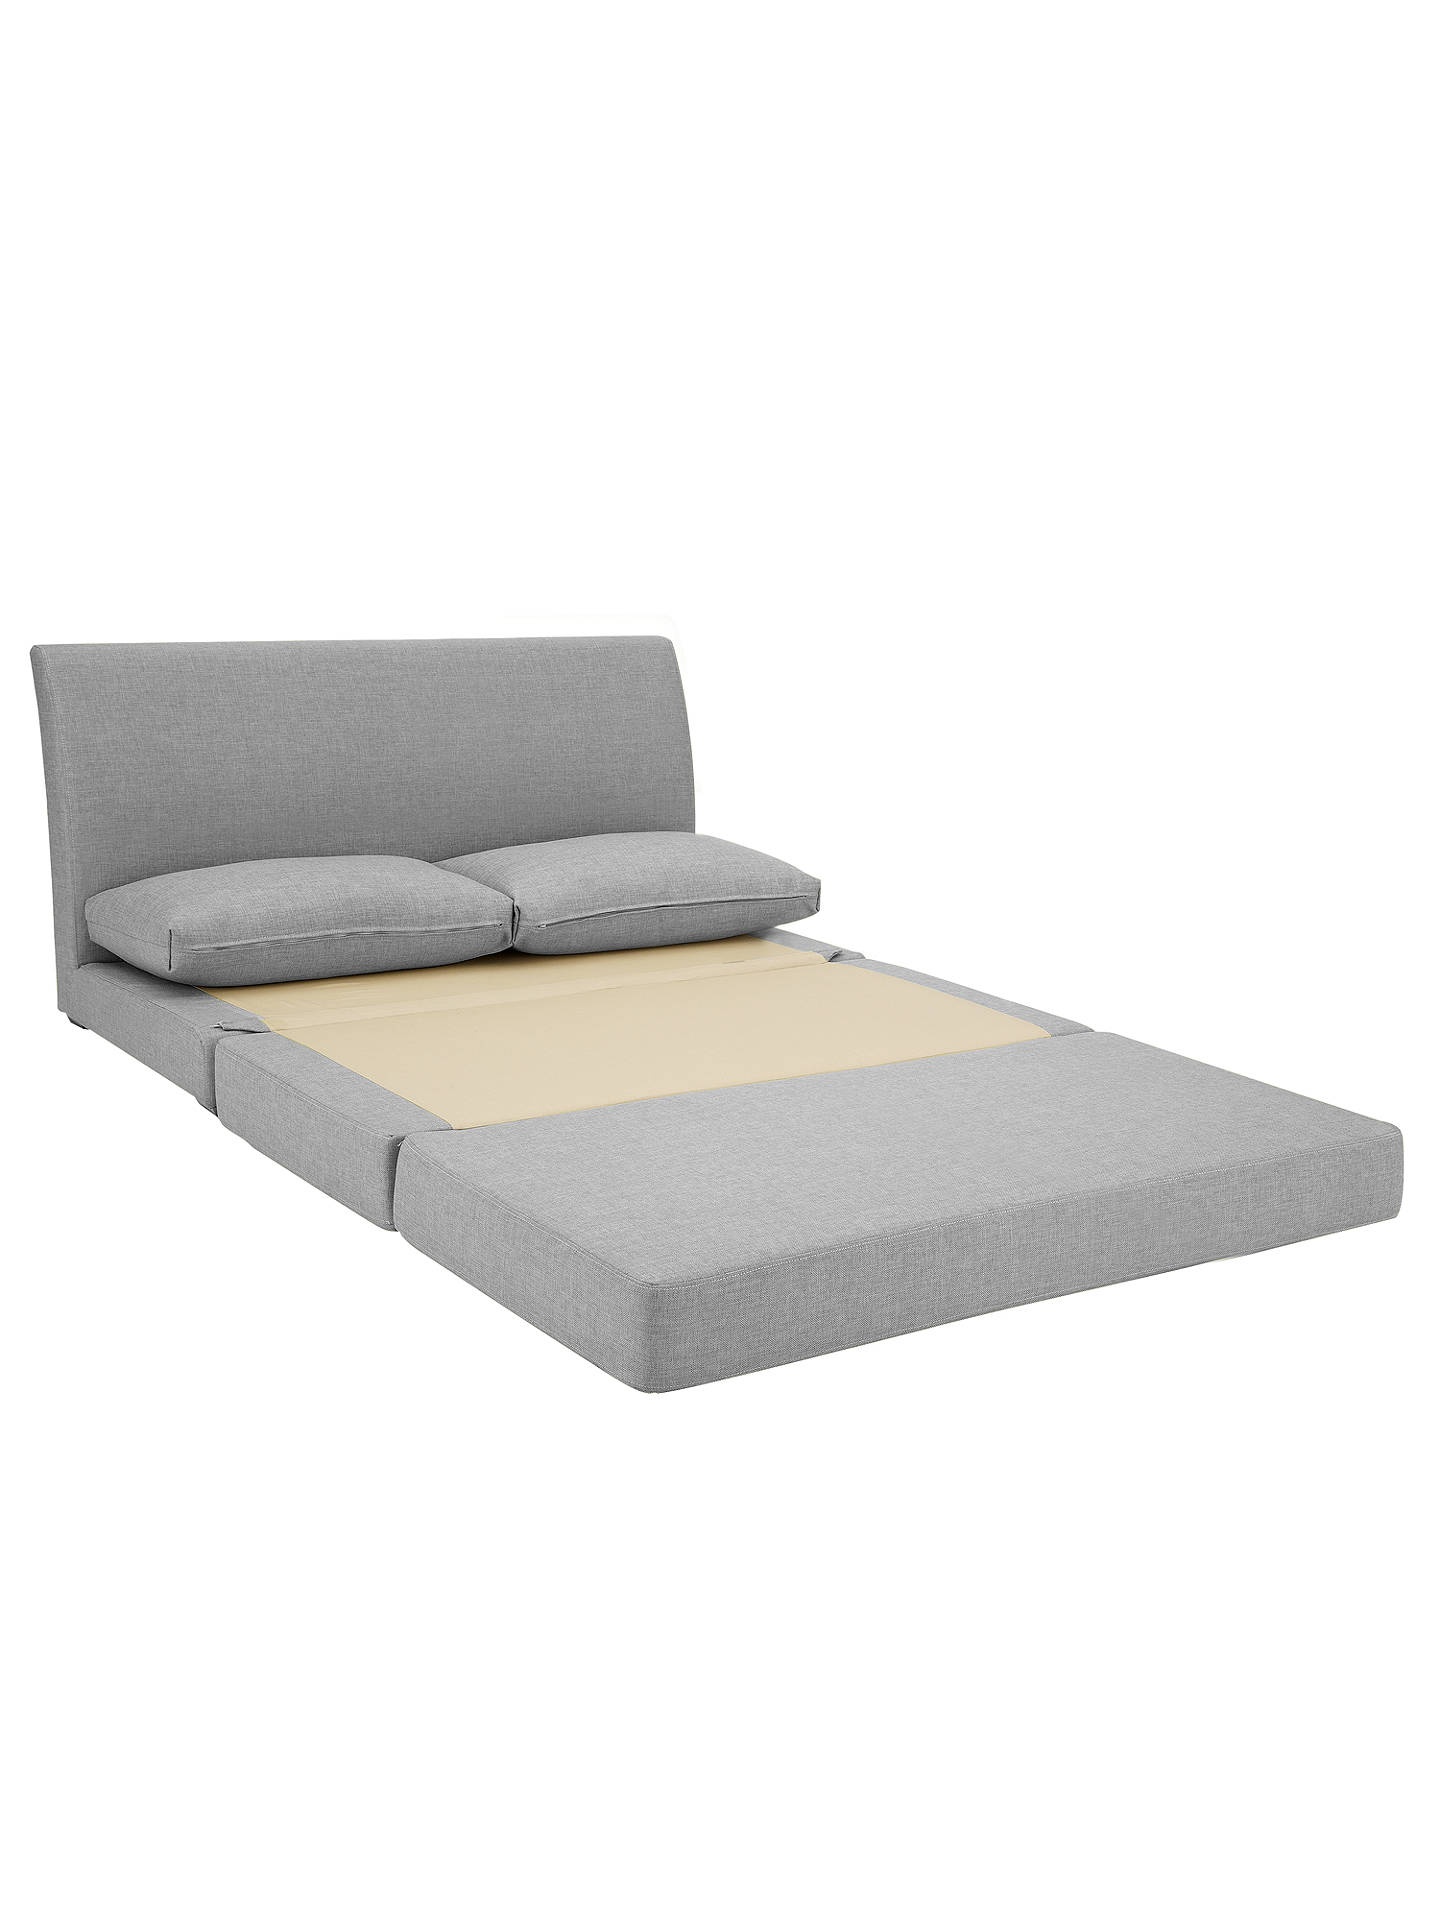 BuyJohn Lewis & Partners Kip Small Double Sofa Bed with Foam Mattress, Light Leg, Aquaclean Matilda Teal Online at johnlewis.com